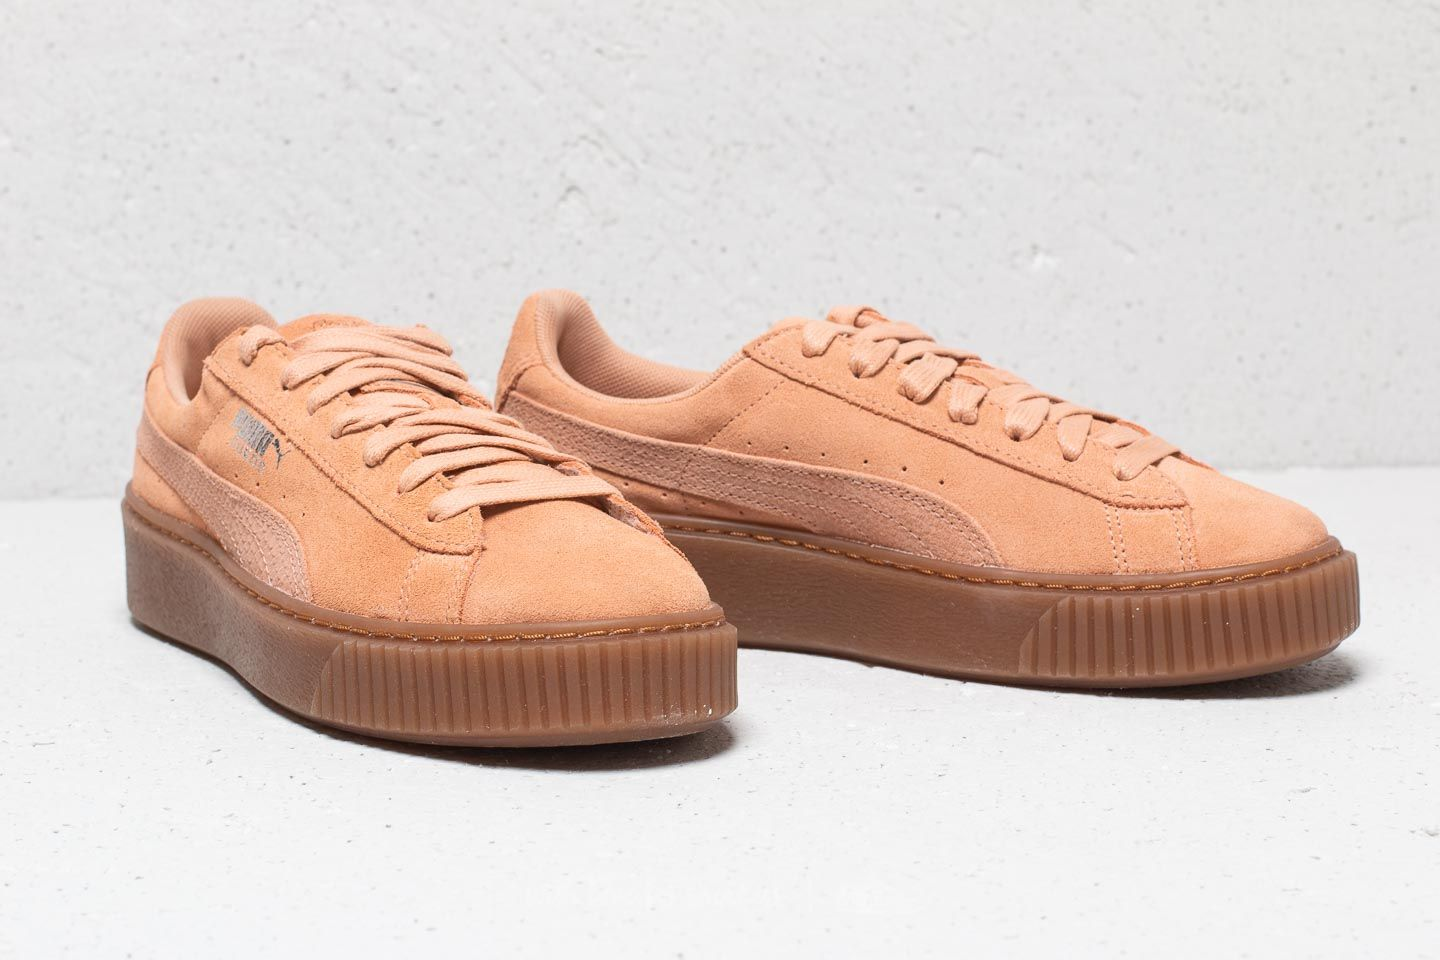 Puma Suede Platform Animal Wn s Dusty Coral  Puma Silver at a great price  £67 15523bfe8f59